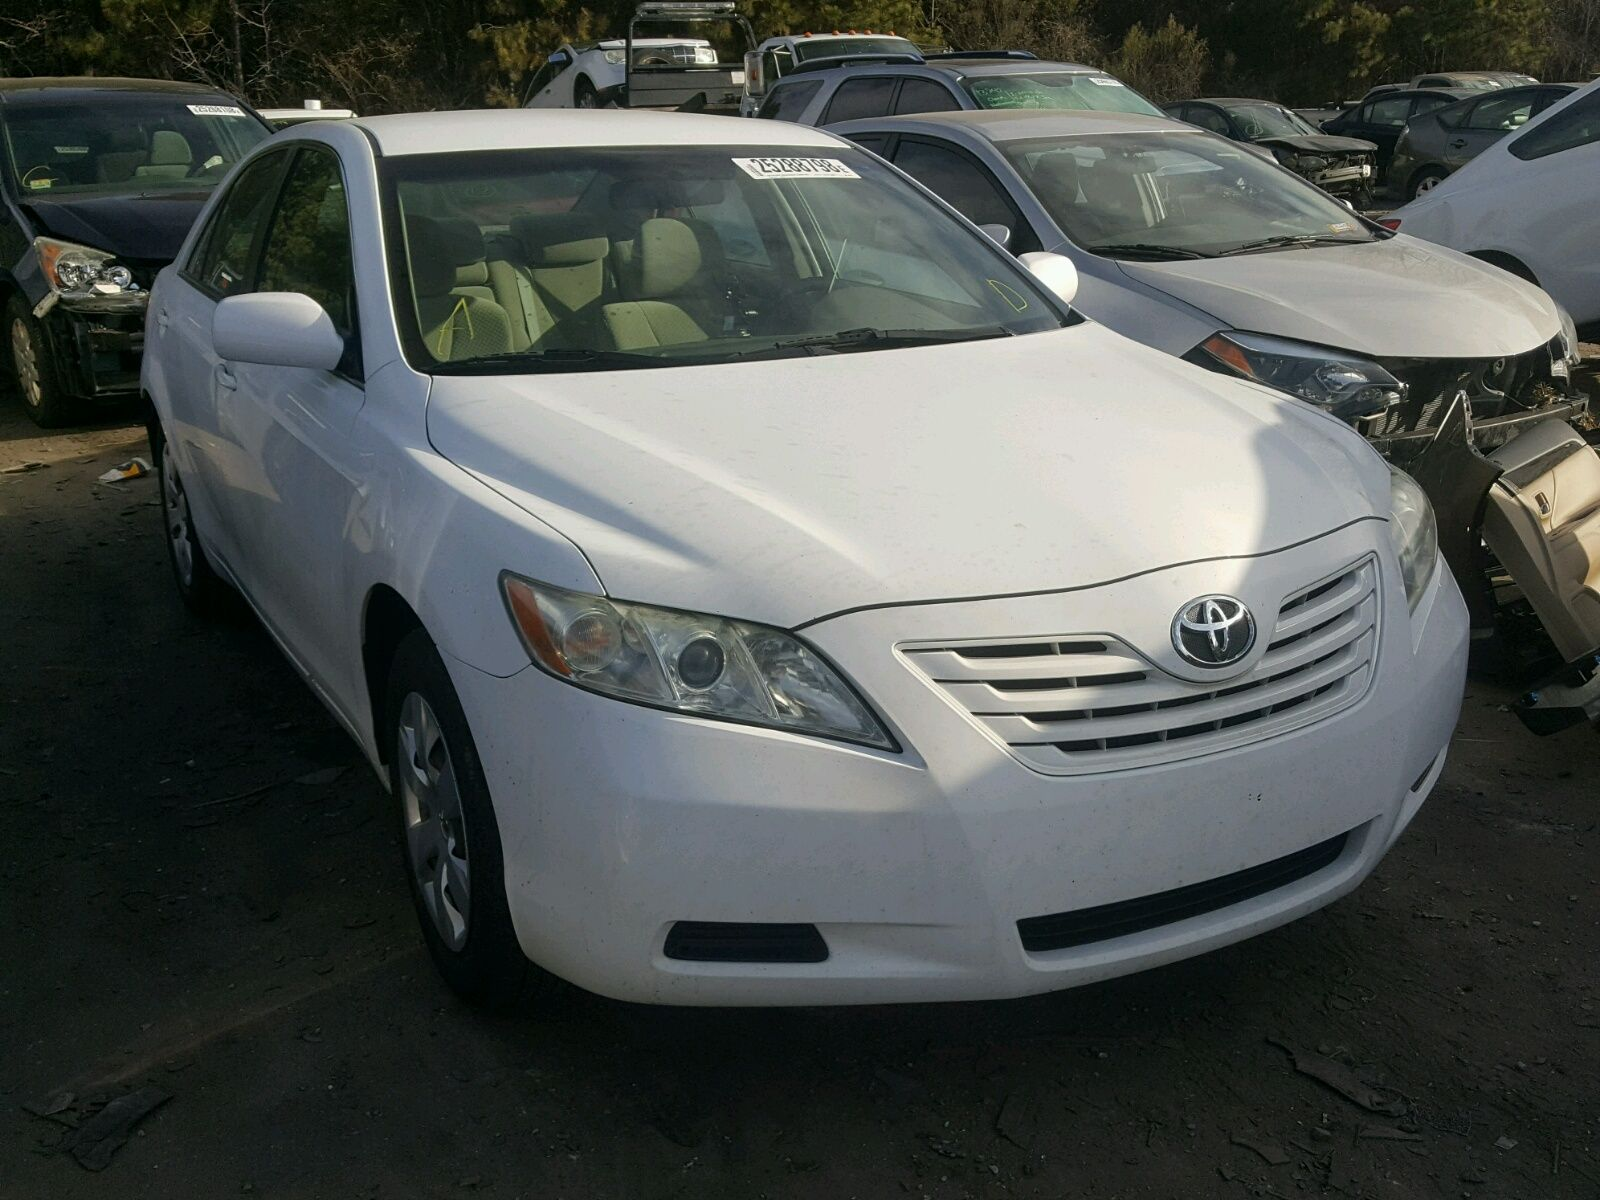 2009 Toyota Camry Base 2 4l For Sale At Copart Auto Auction Buy It Now Car Auctions Camry Toyota Camry